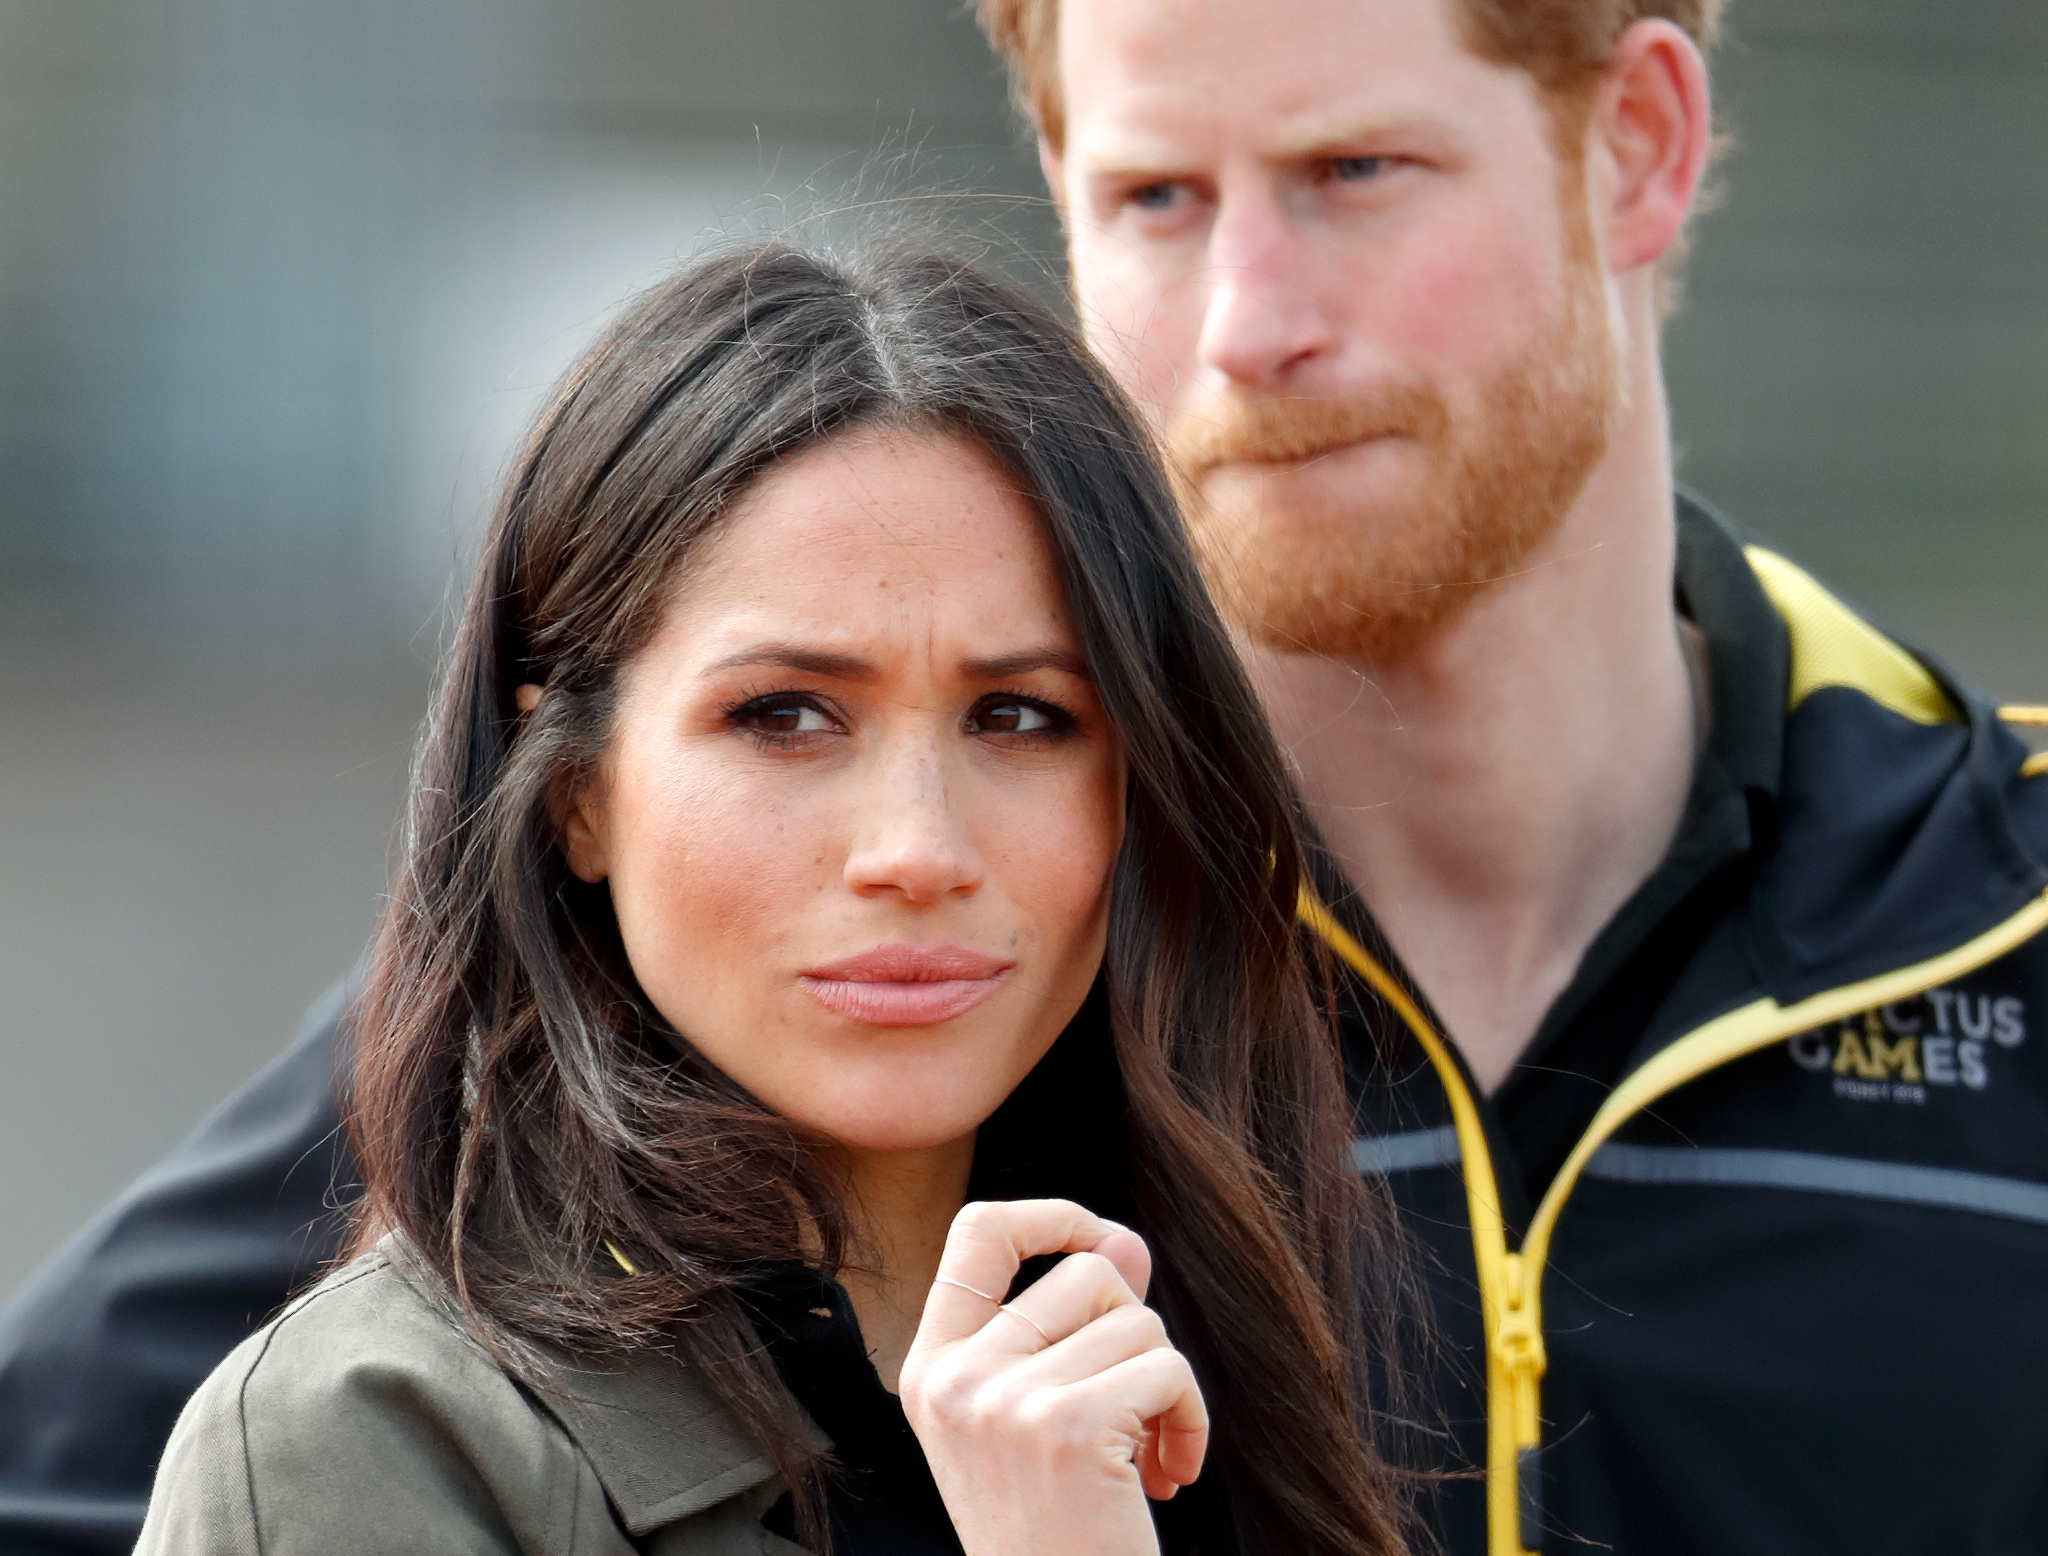 Everything You Need to Know About Meghan Markle's Family Drama